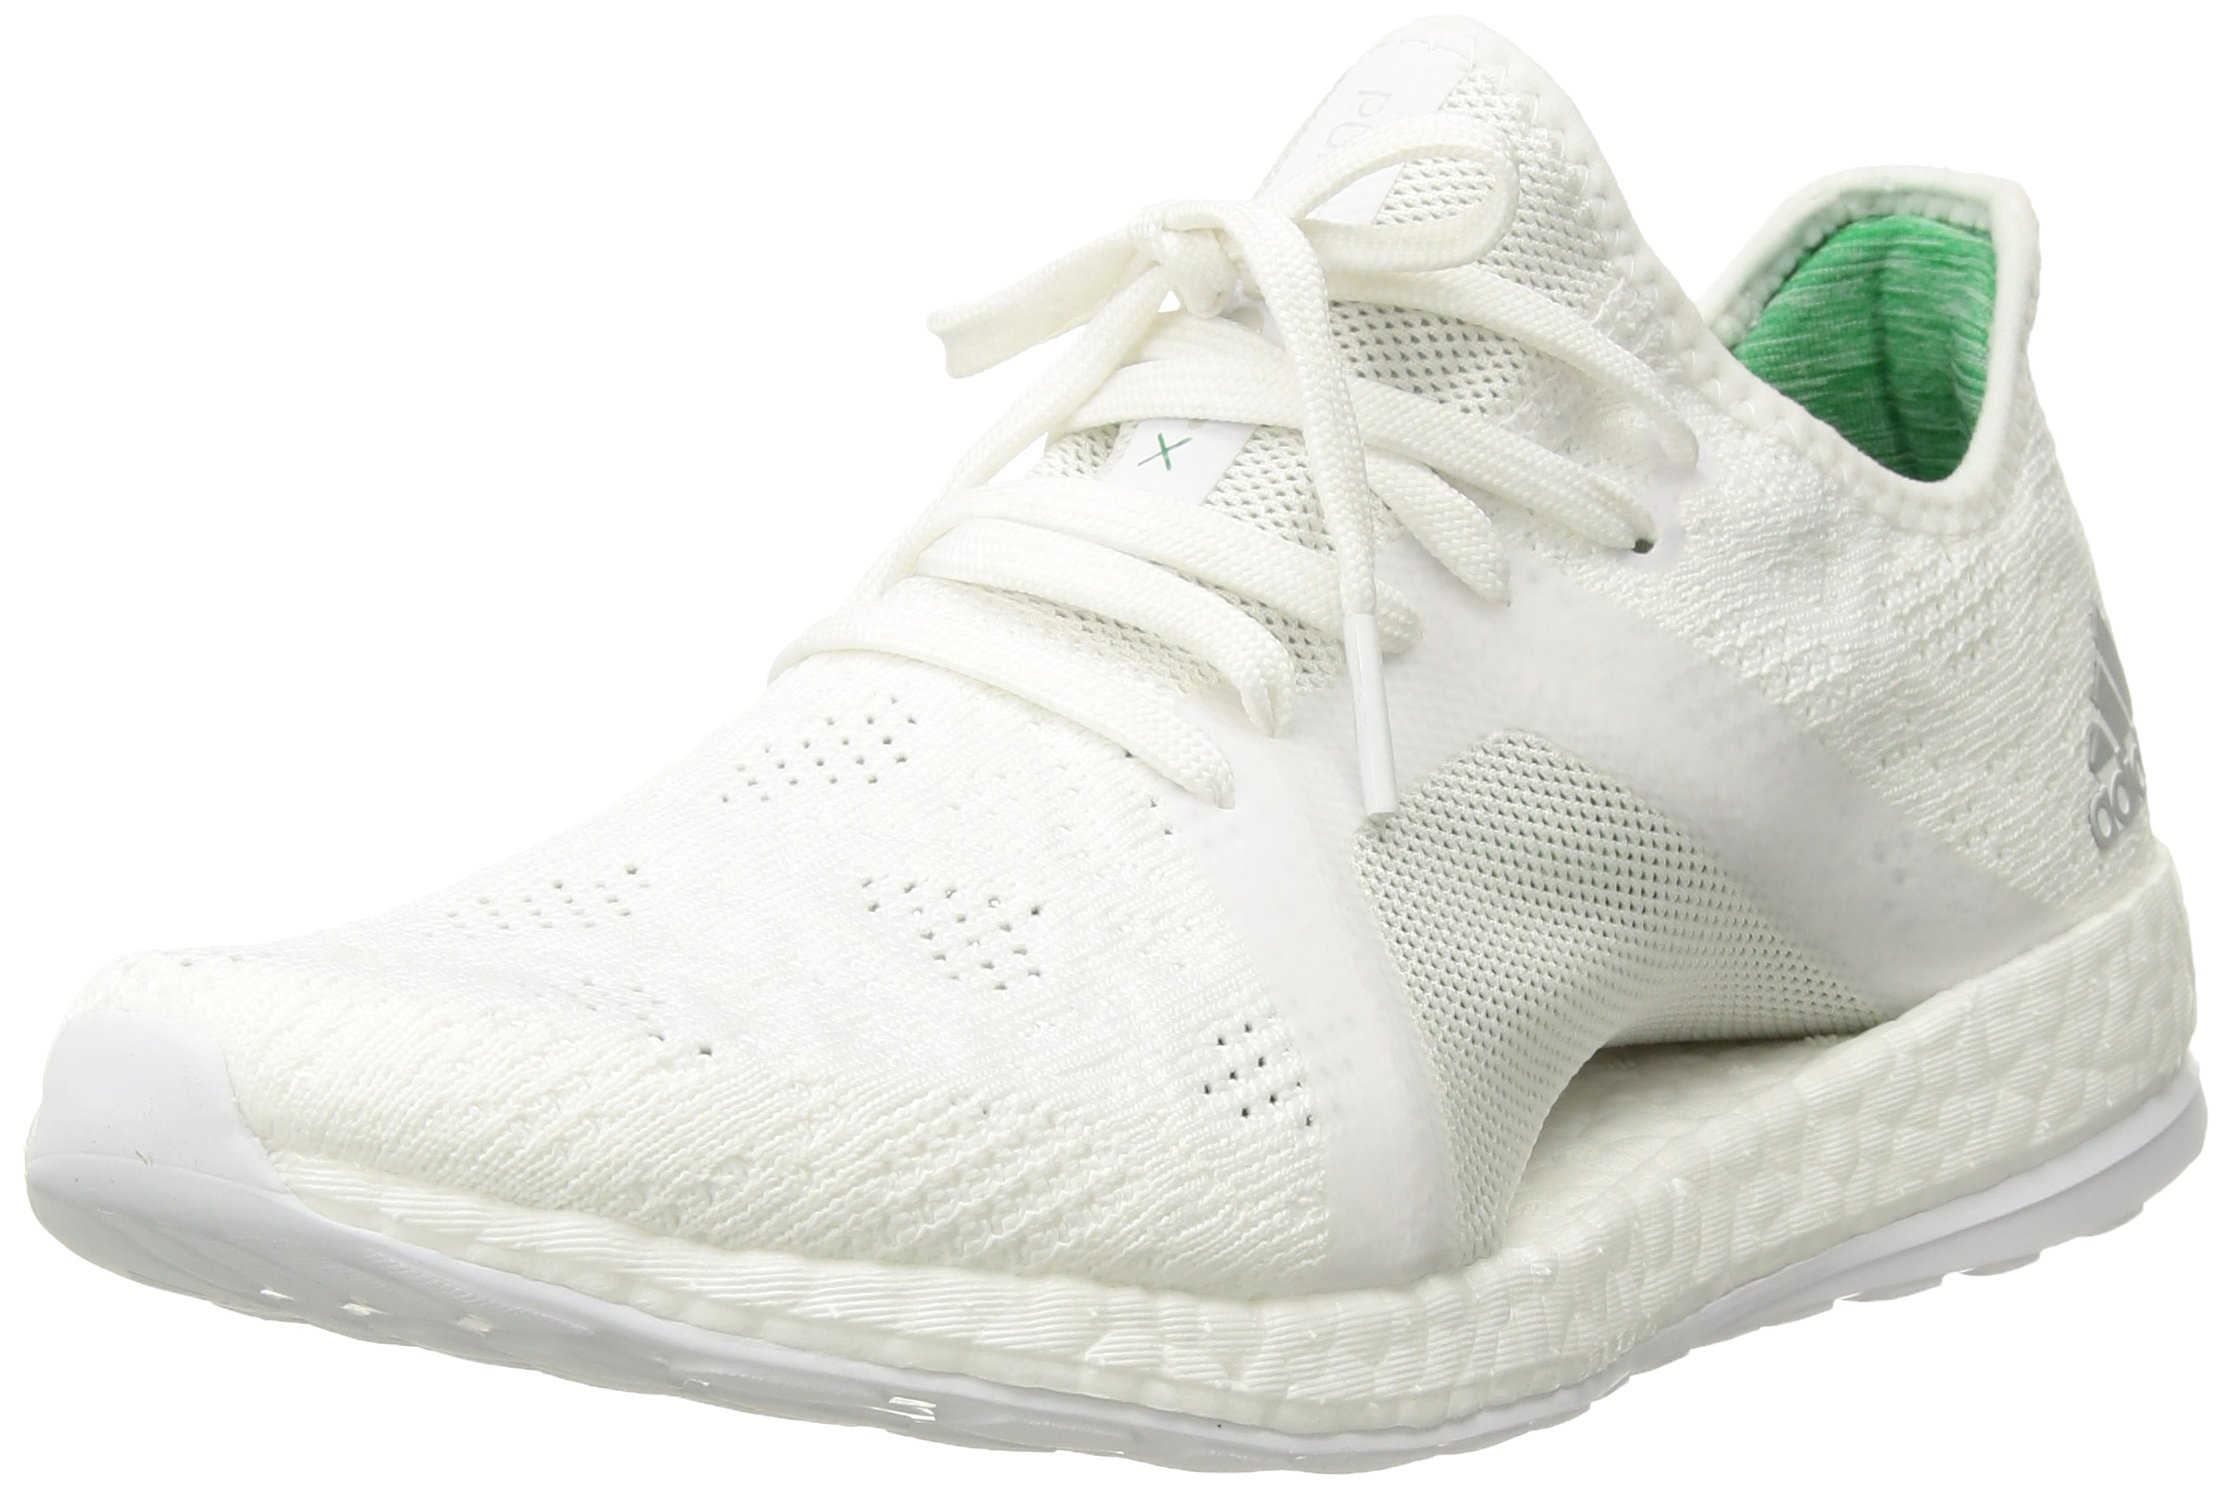 various colors fb5df b7b05 Galleon - Adidas Women s Pureboost X Element Running Shoe, White Grey  Two Green, 9.5 M US